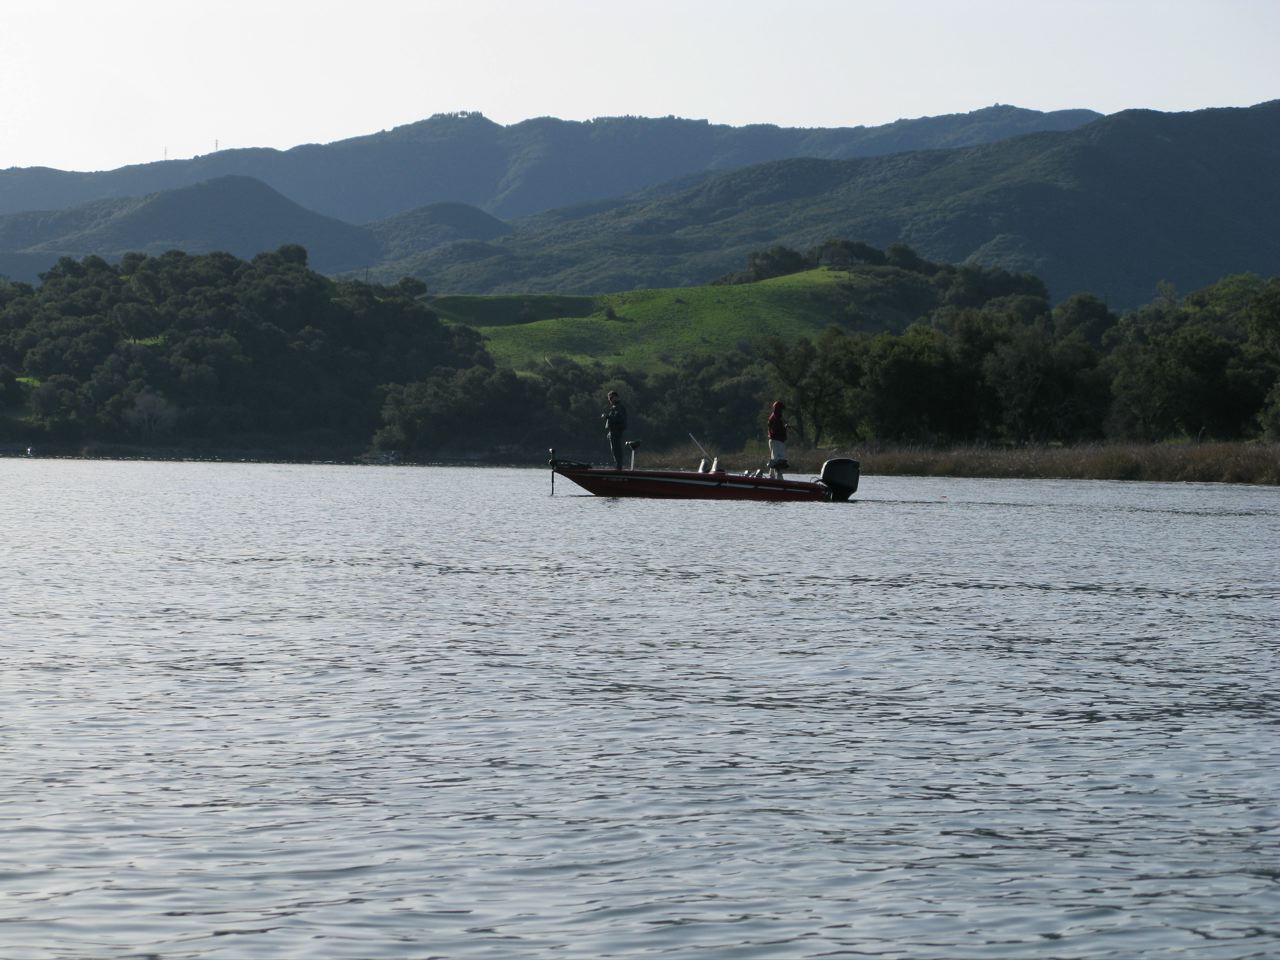 The reel world june 2011 for Lake cachuma fishing report